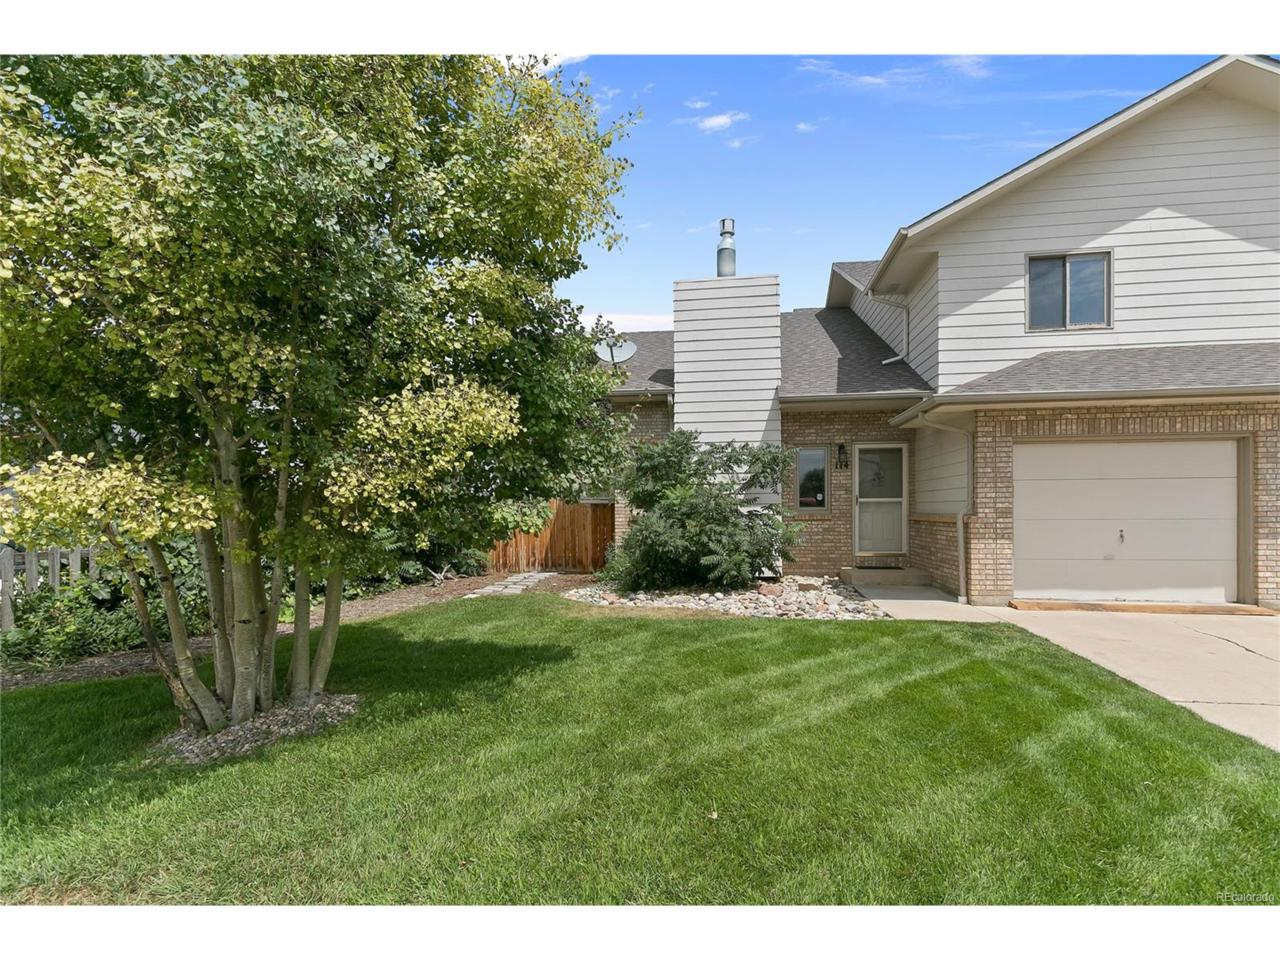 114 Indiana Avenue, Berthoud, CO 80513 (MLS #6198457) :: 8z Real Estate